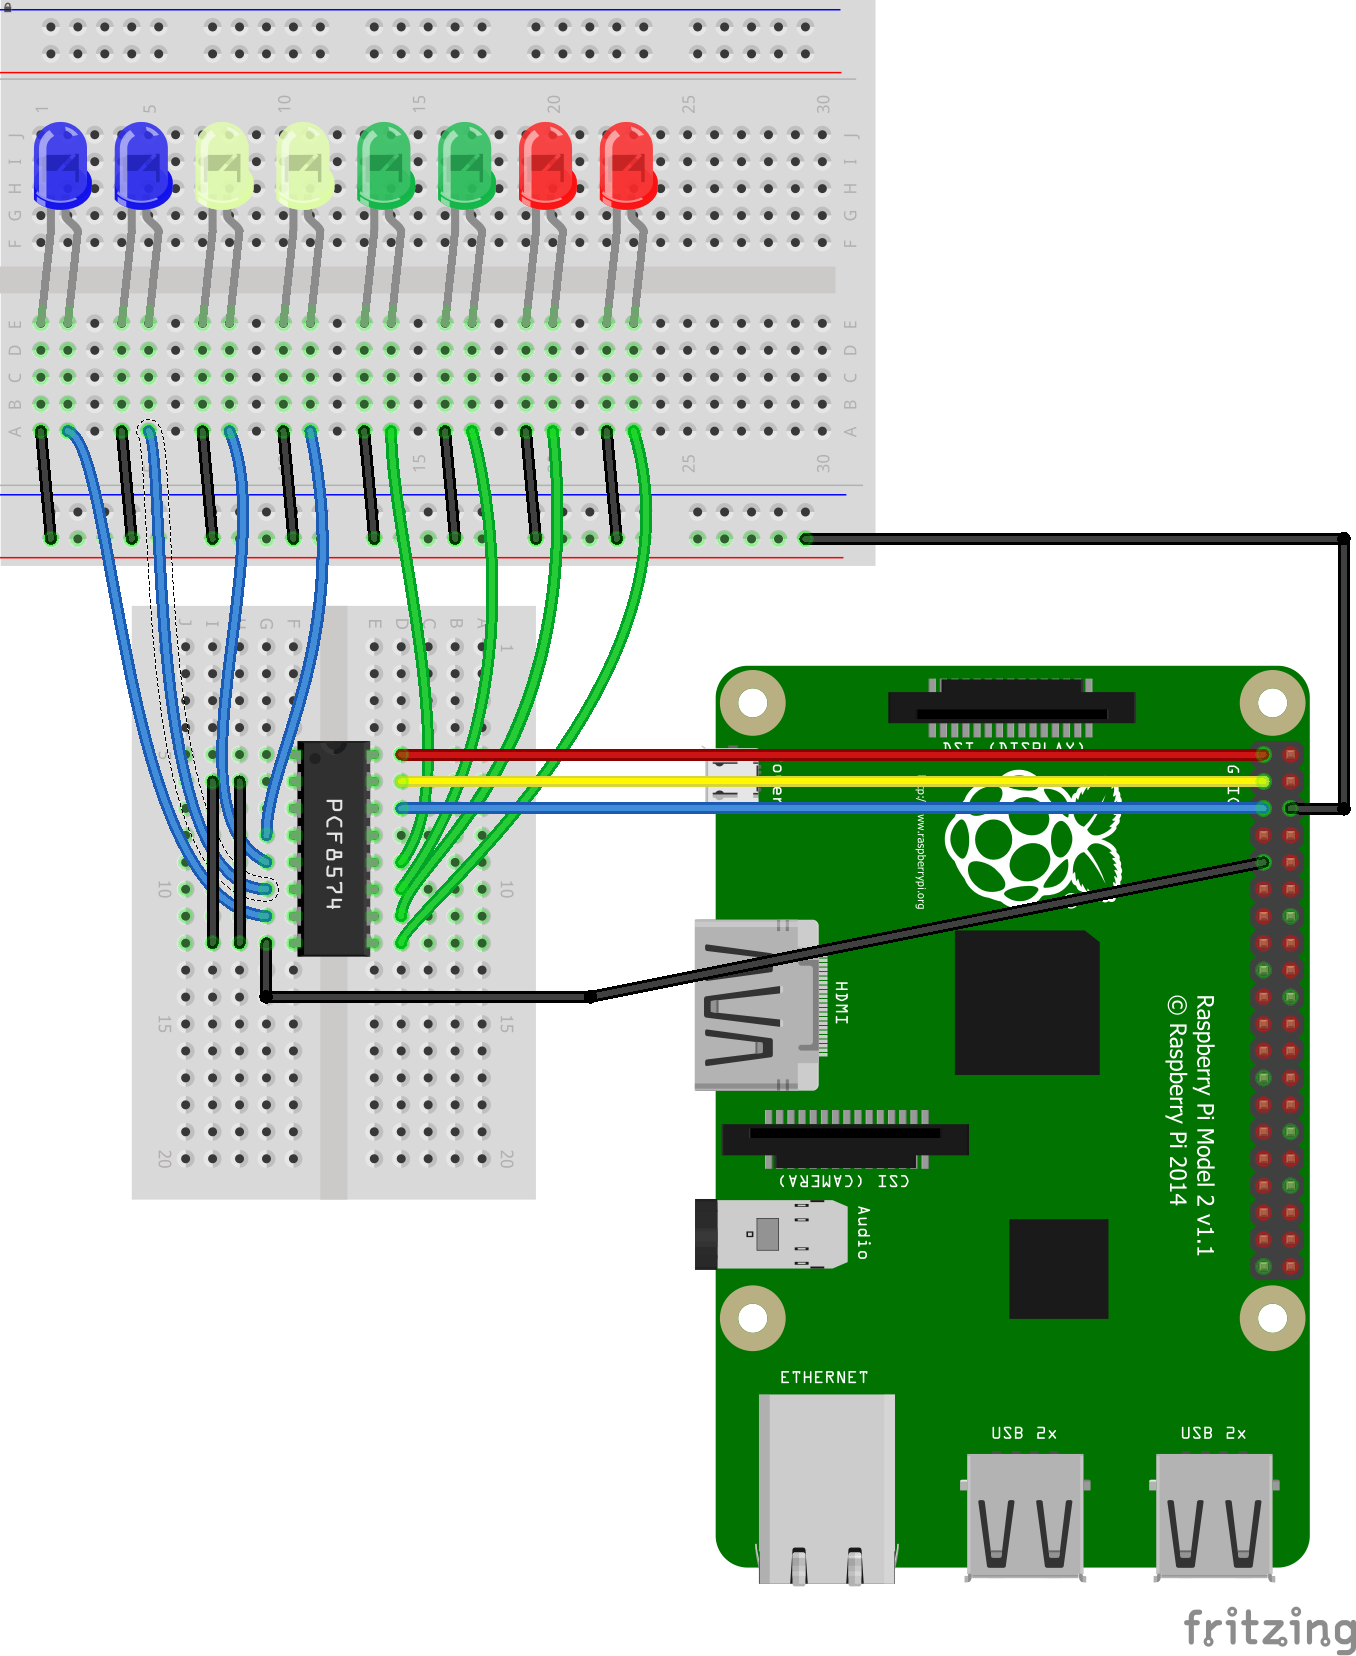 Raspberry Pi And Pcf8574 Example Raspberrypi Electronics Wiringpi Serial Arduino